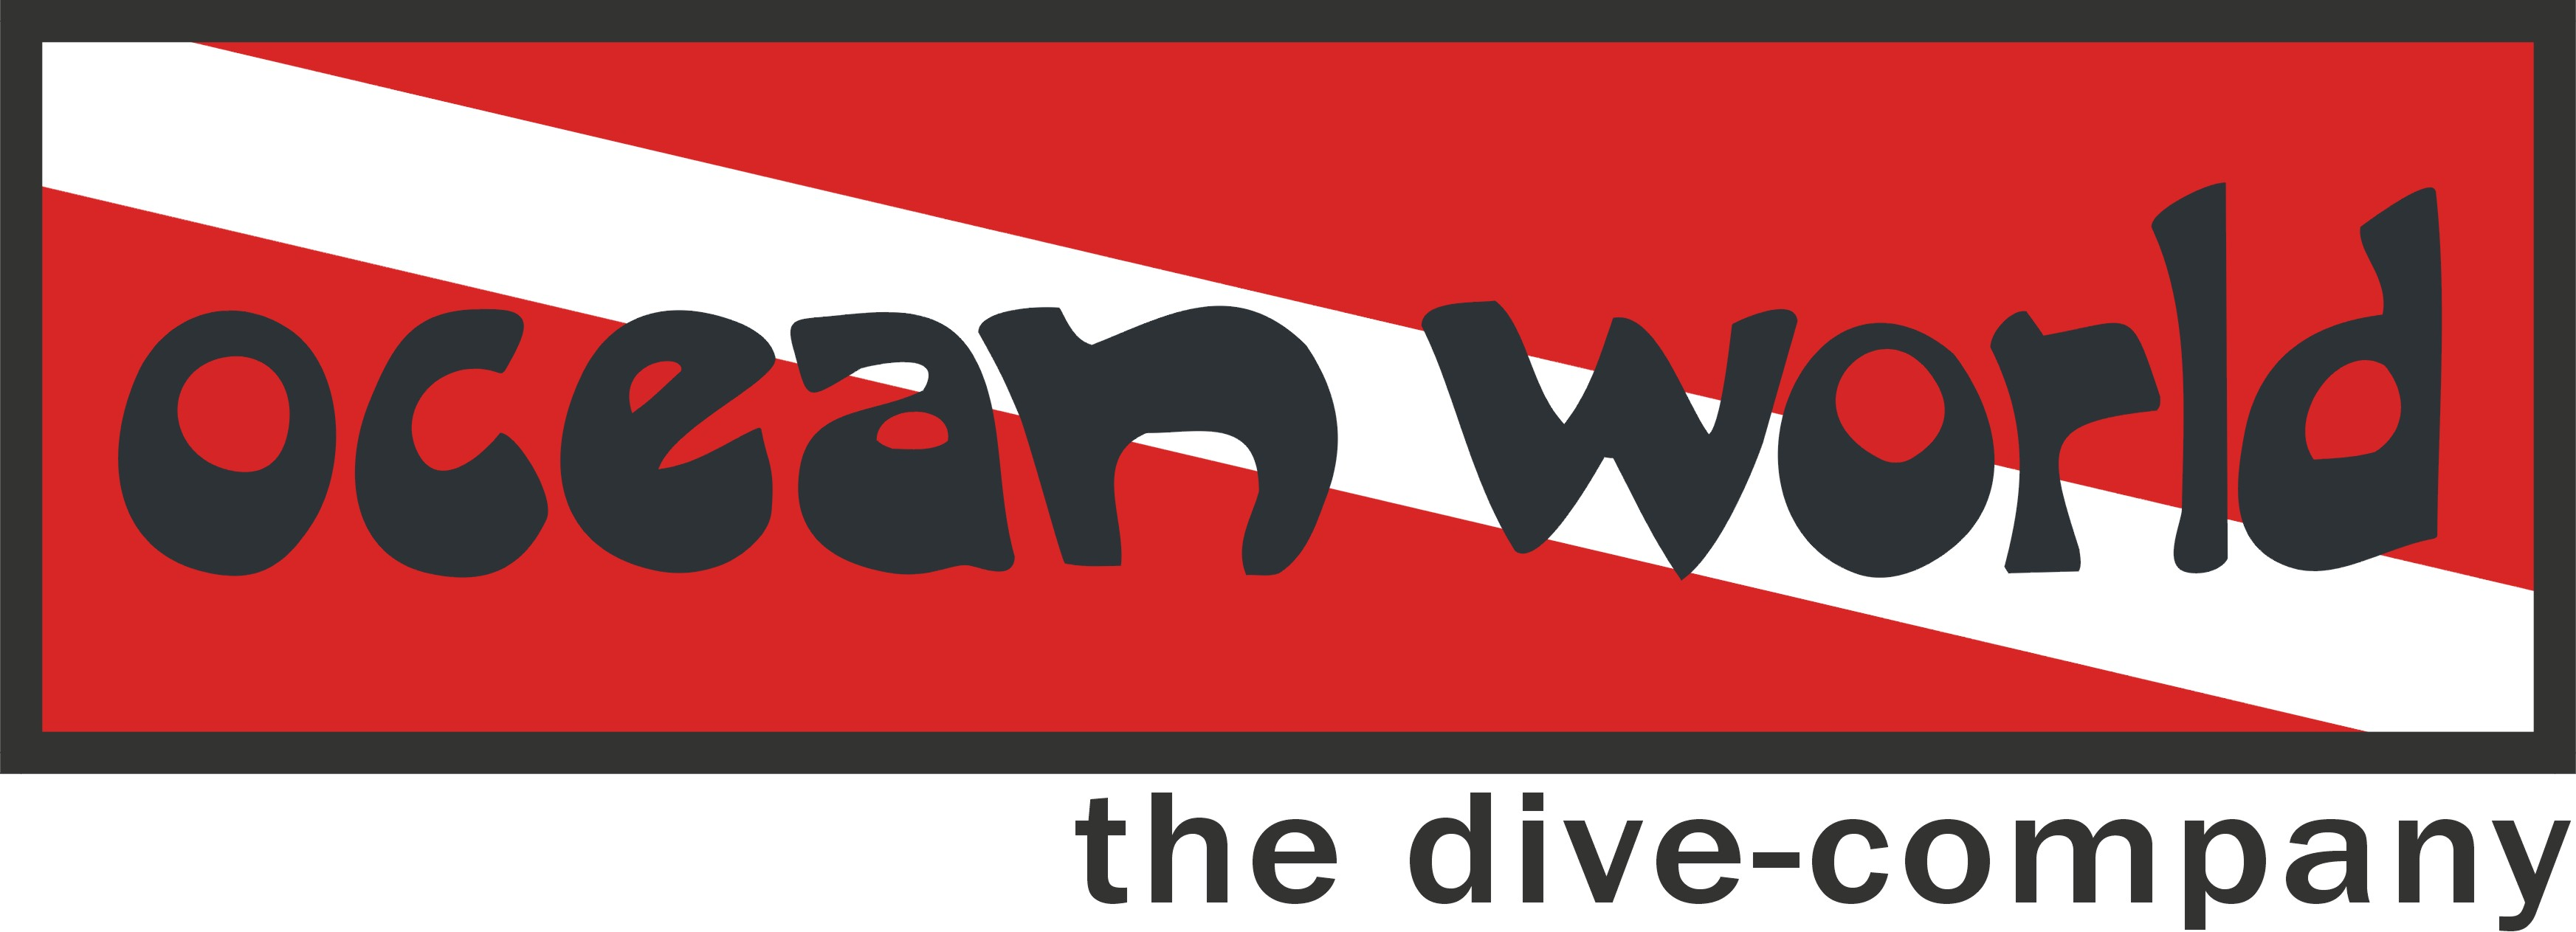 logo_ocean_world_dive_company